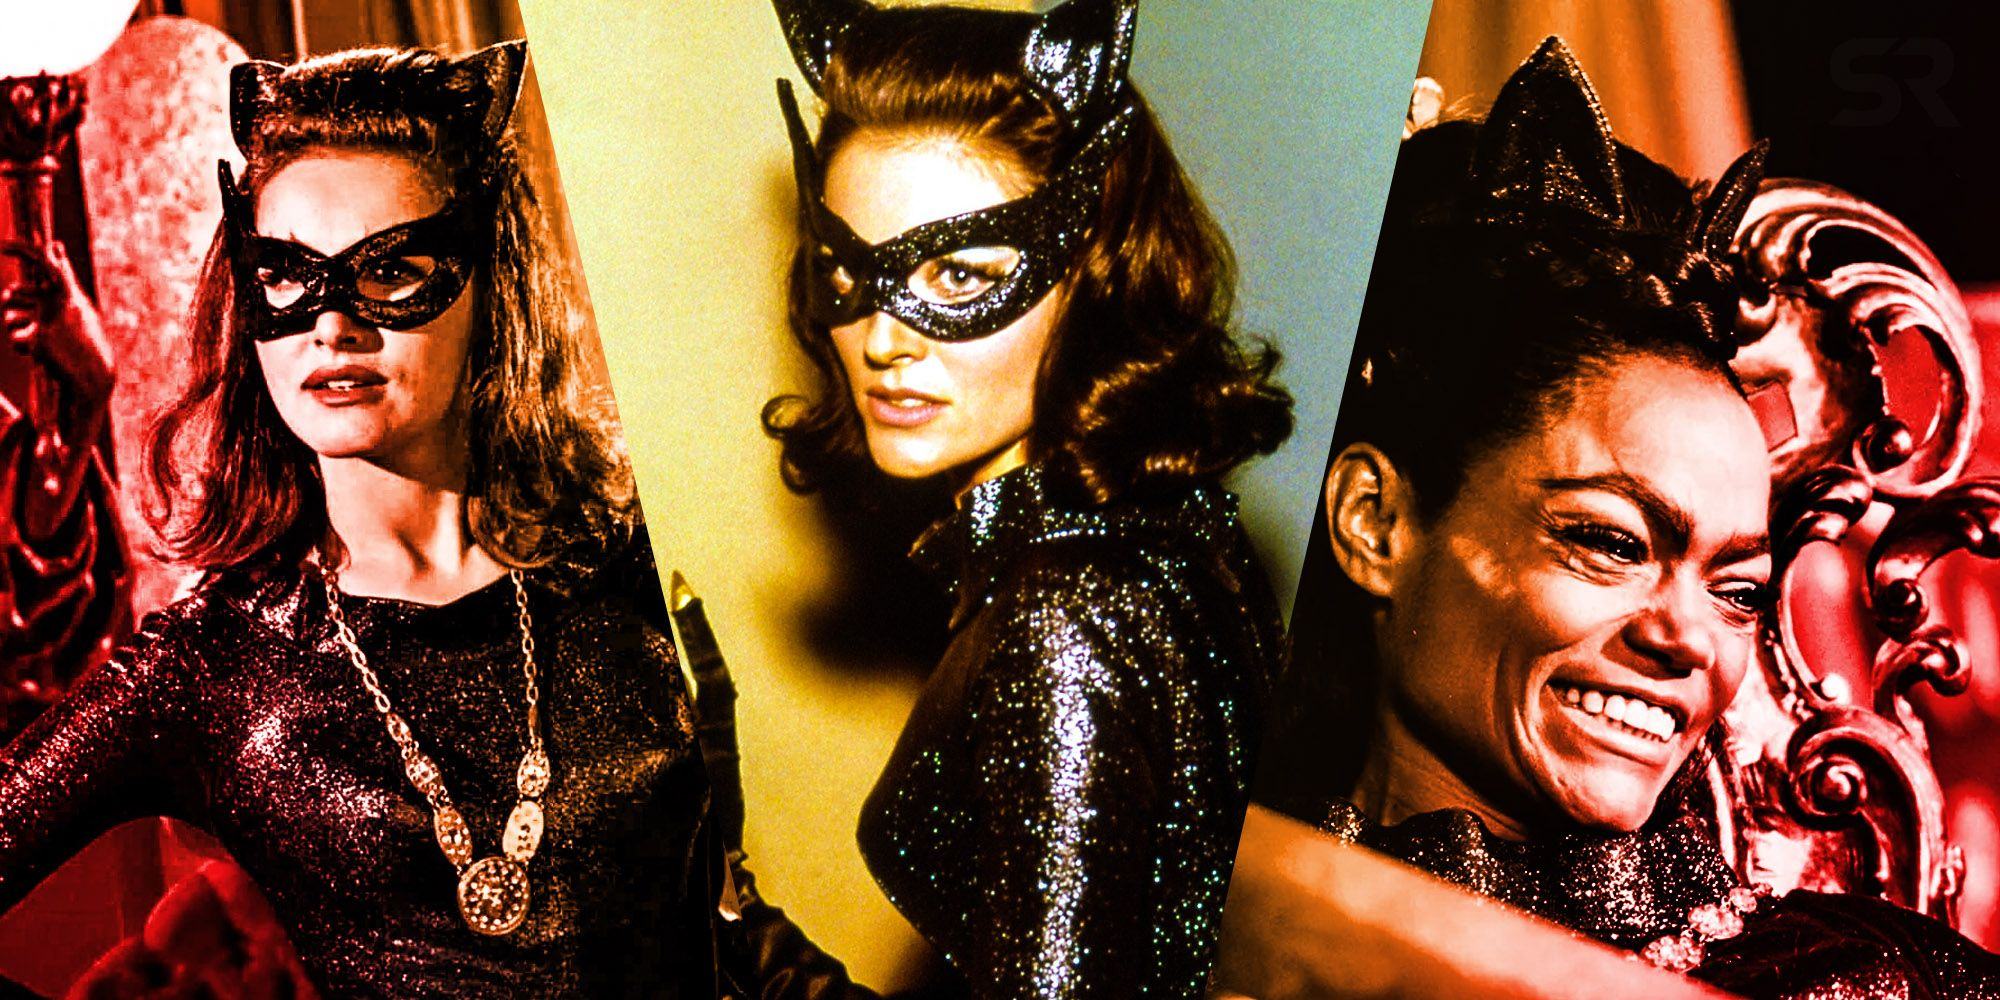 Why The '60s Batman TV Show Had 3 Different Actresses Play Catwoman